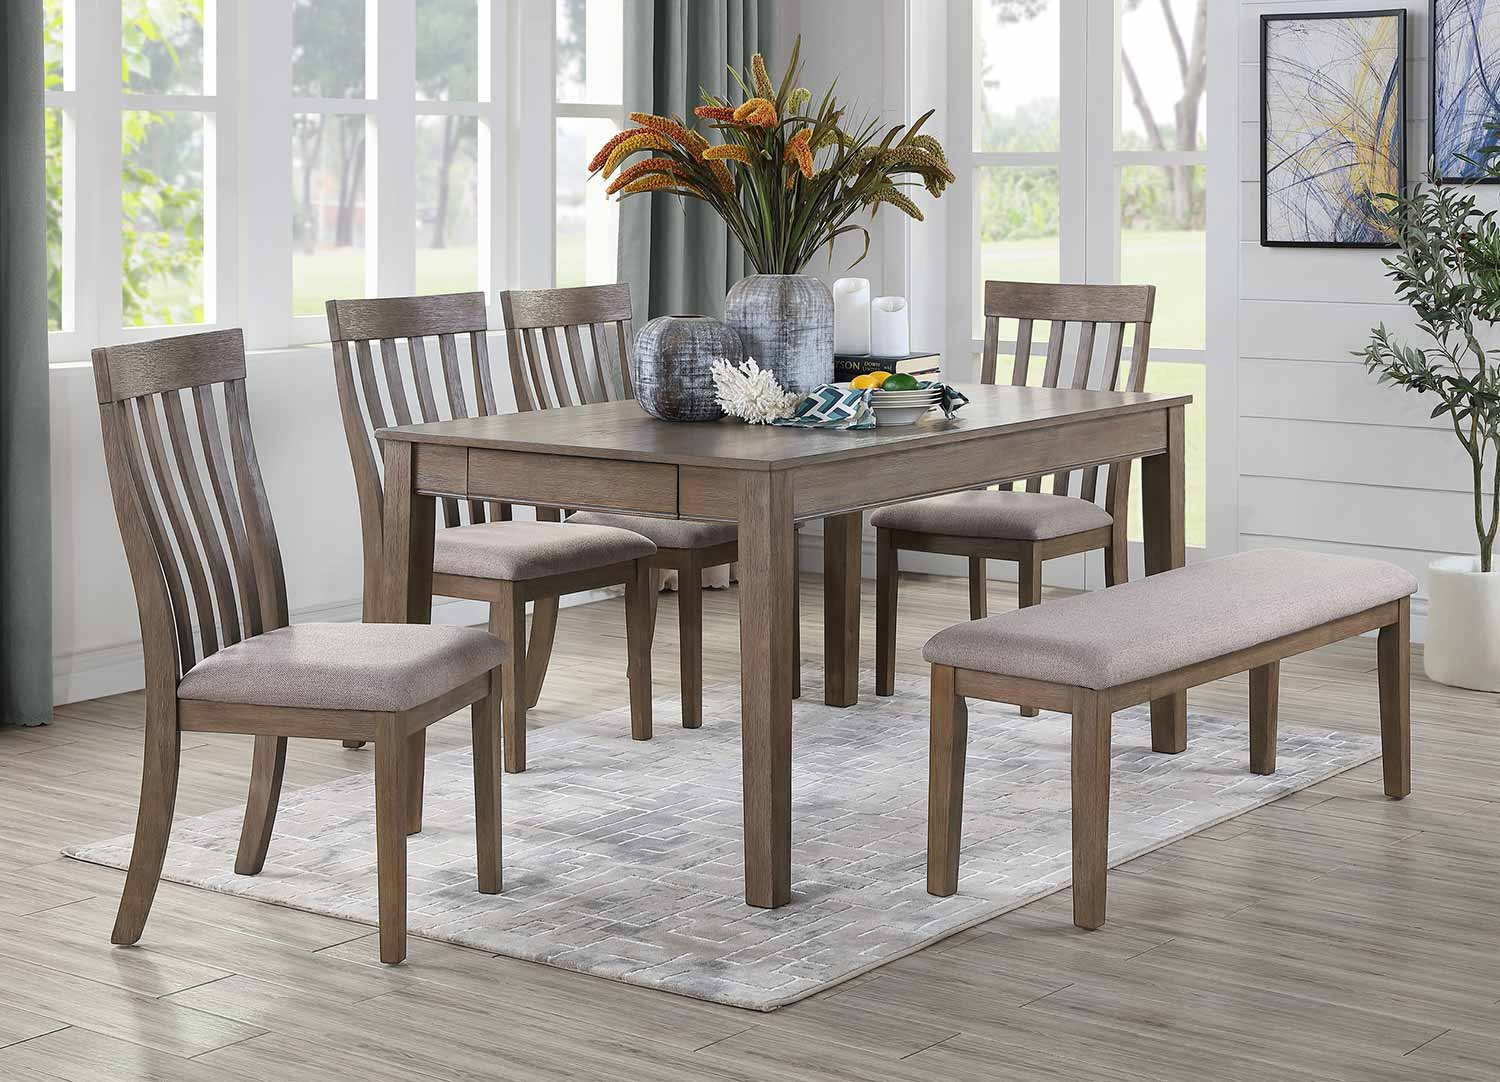 Homelegance Armhurst Dining Set - Brown